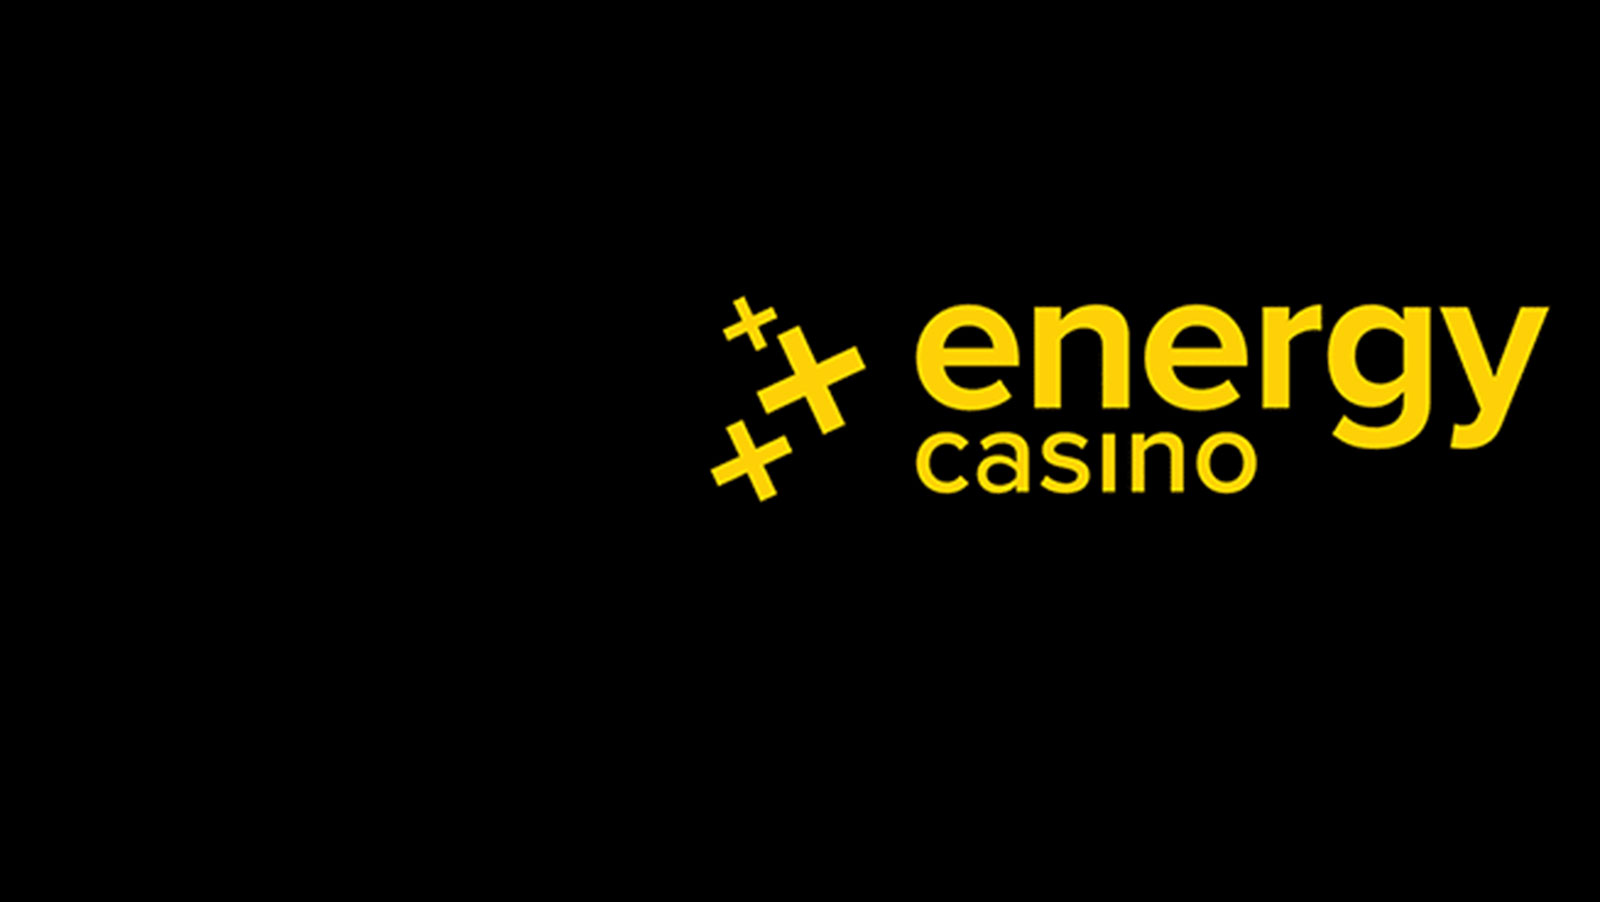 energycasino-expands-its-offering-with-pariplay-content